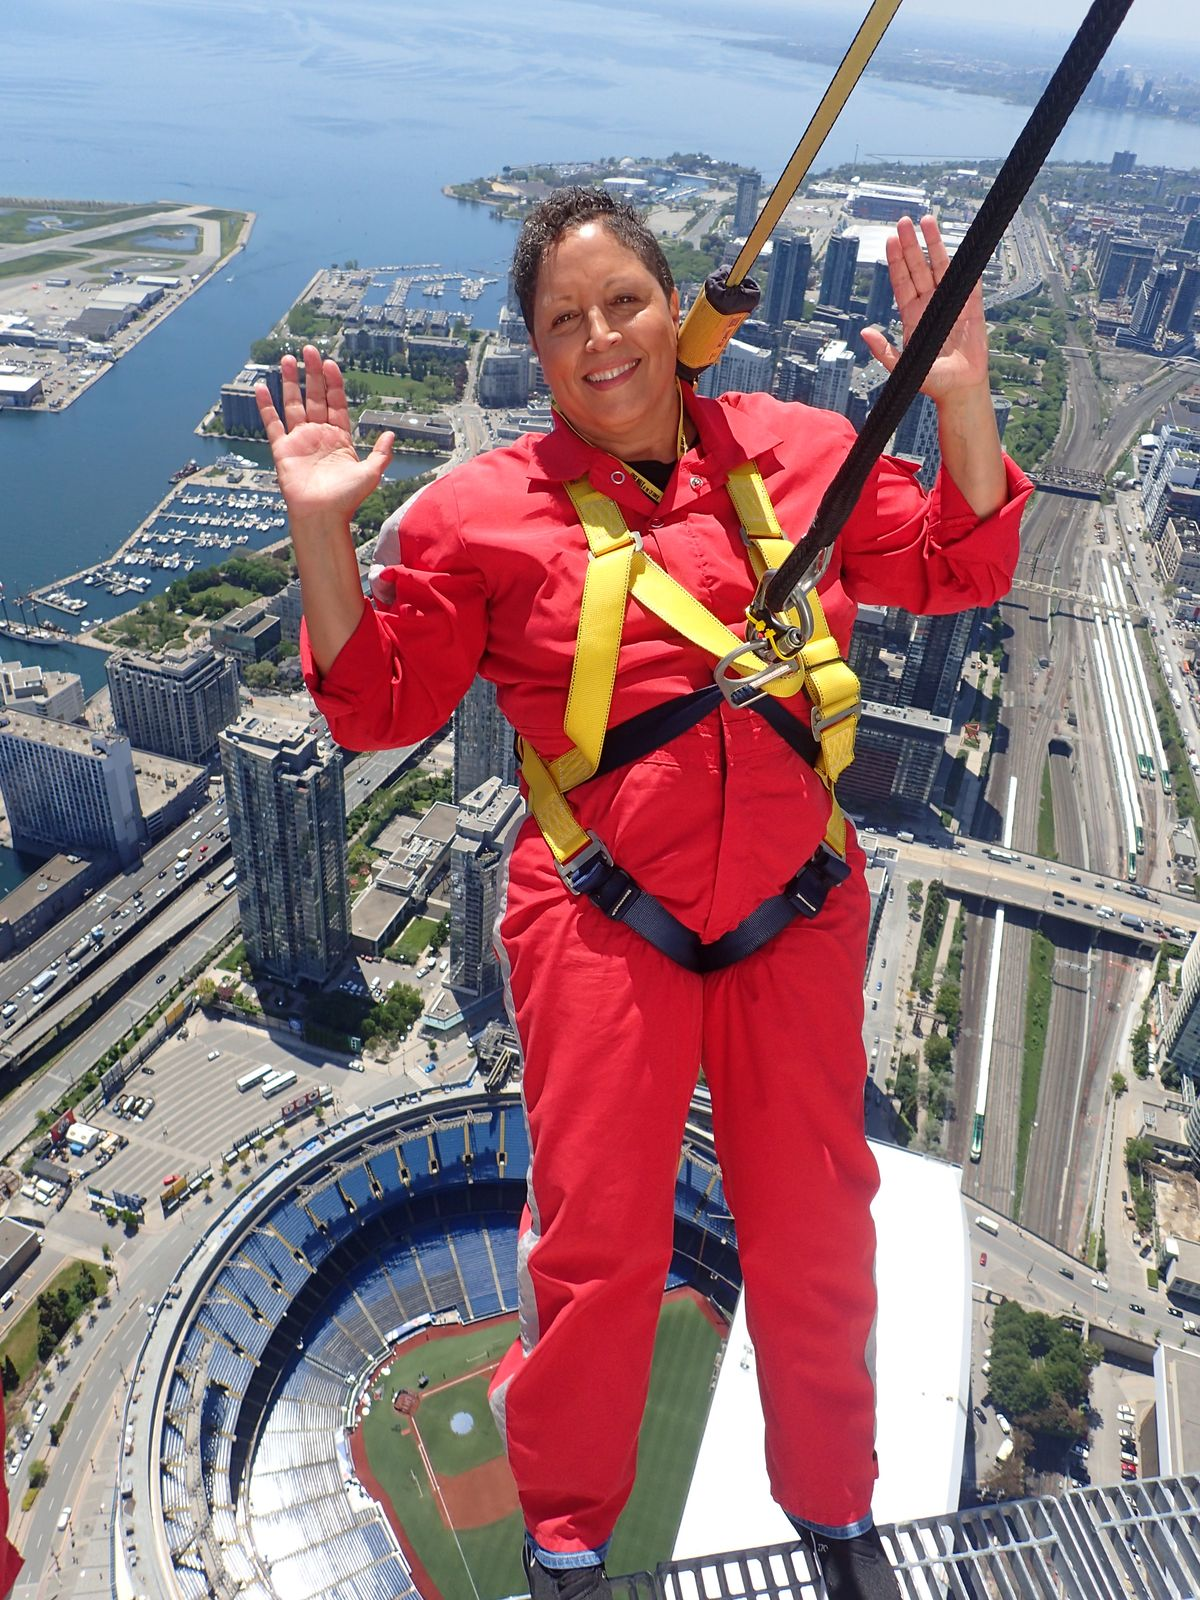 Nona Lee poses for a picture high above Toronto's baseball stadium.